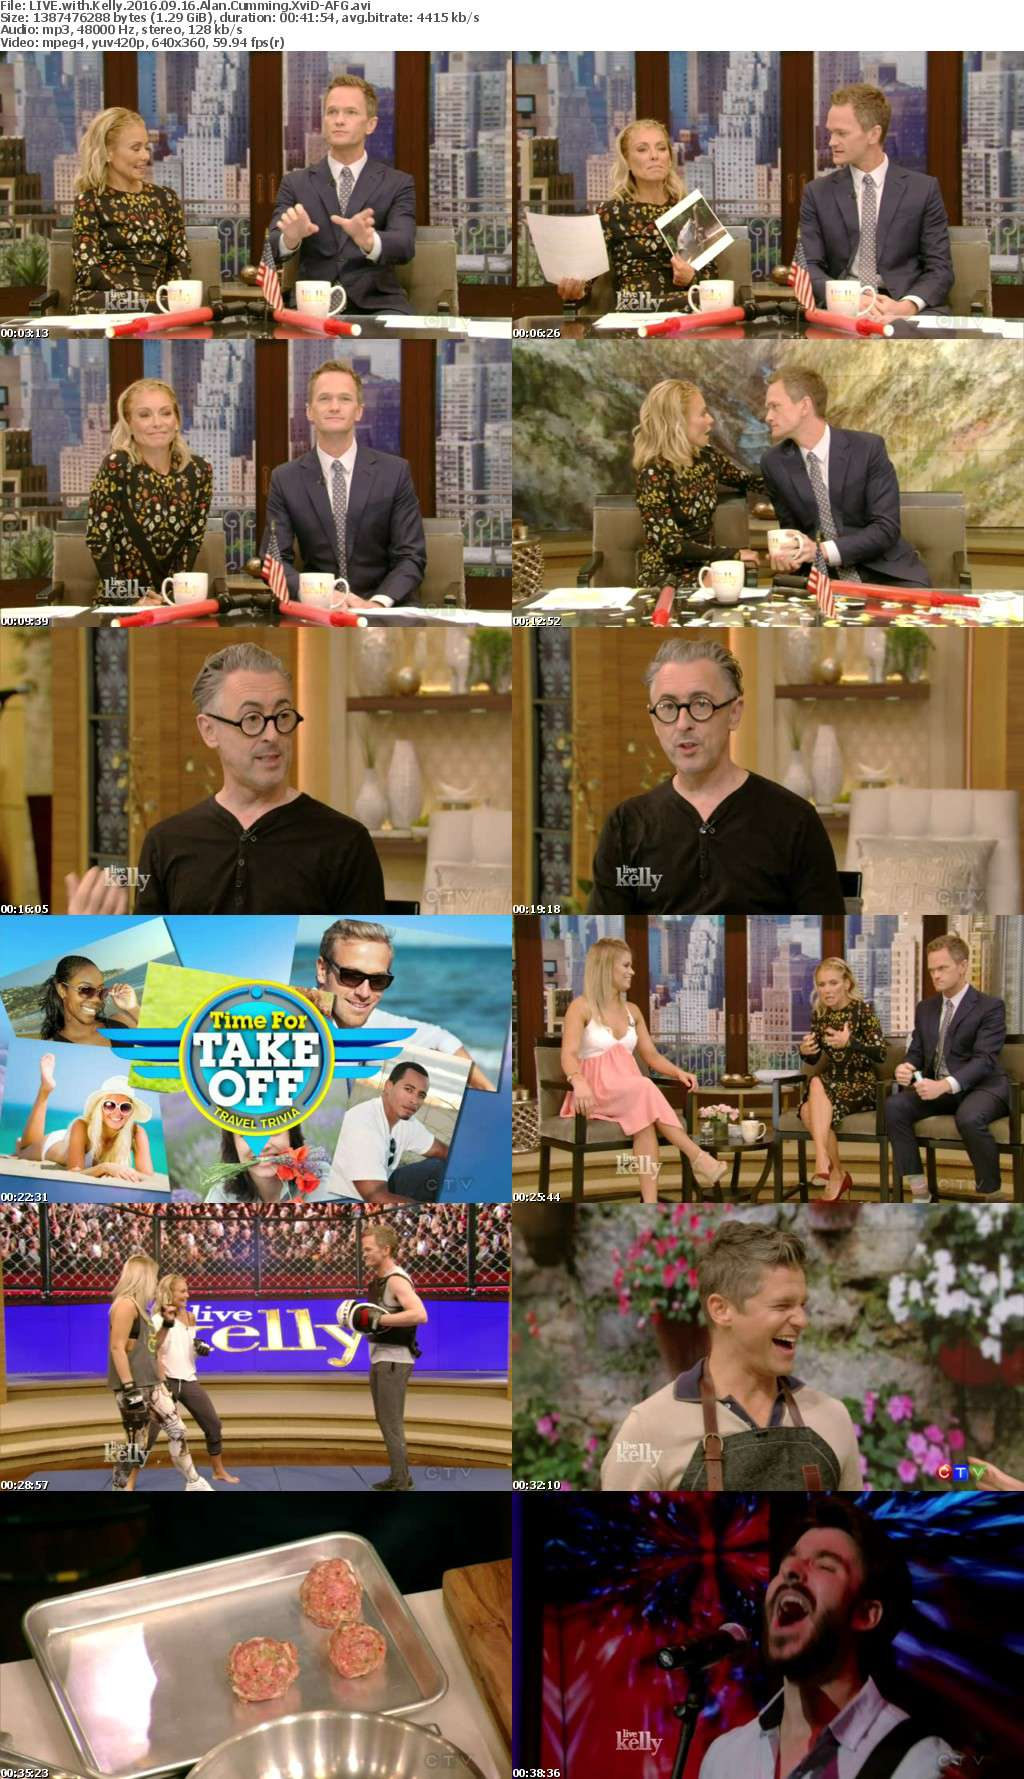 LIVE with Kelly 2016 09 16 Alan Cumming XviD-AFG